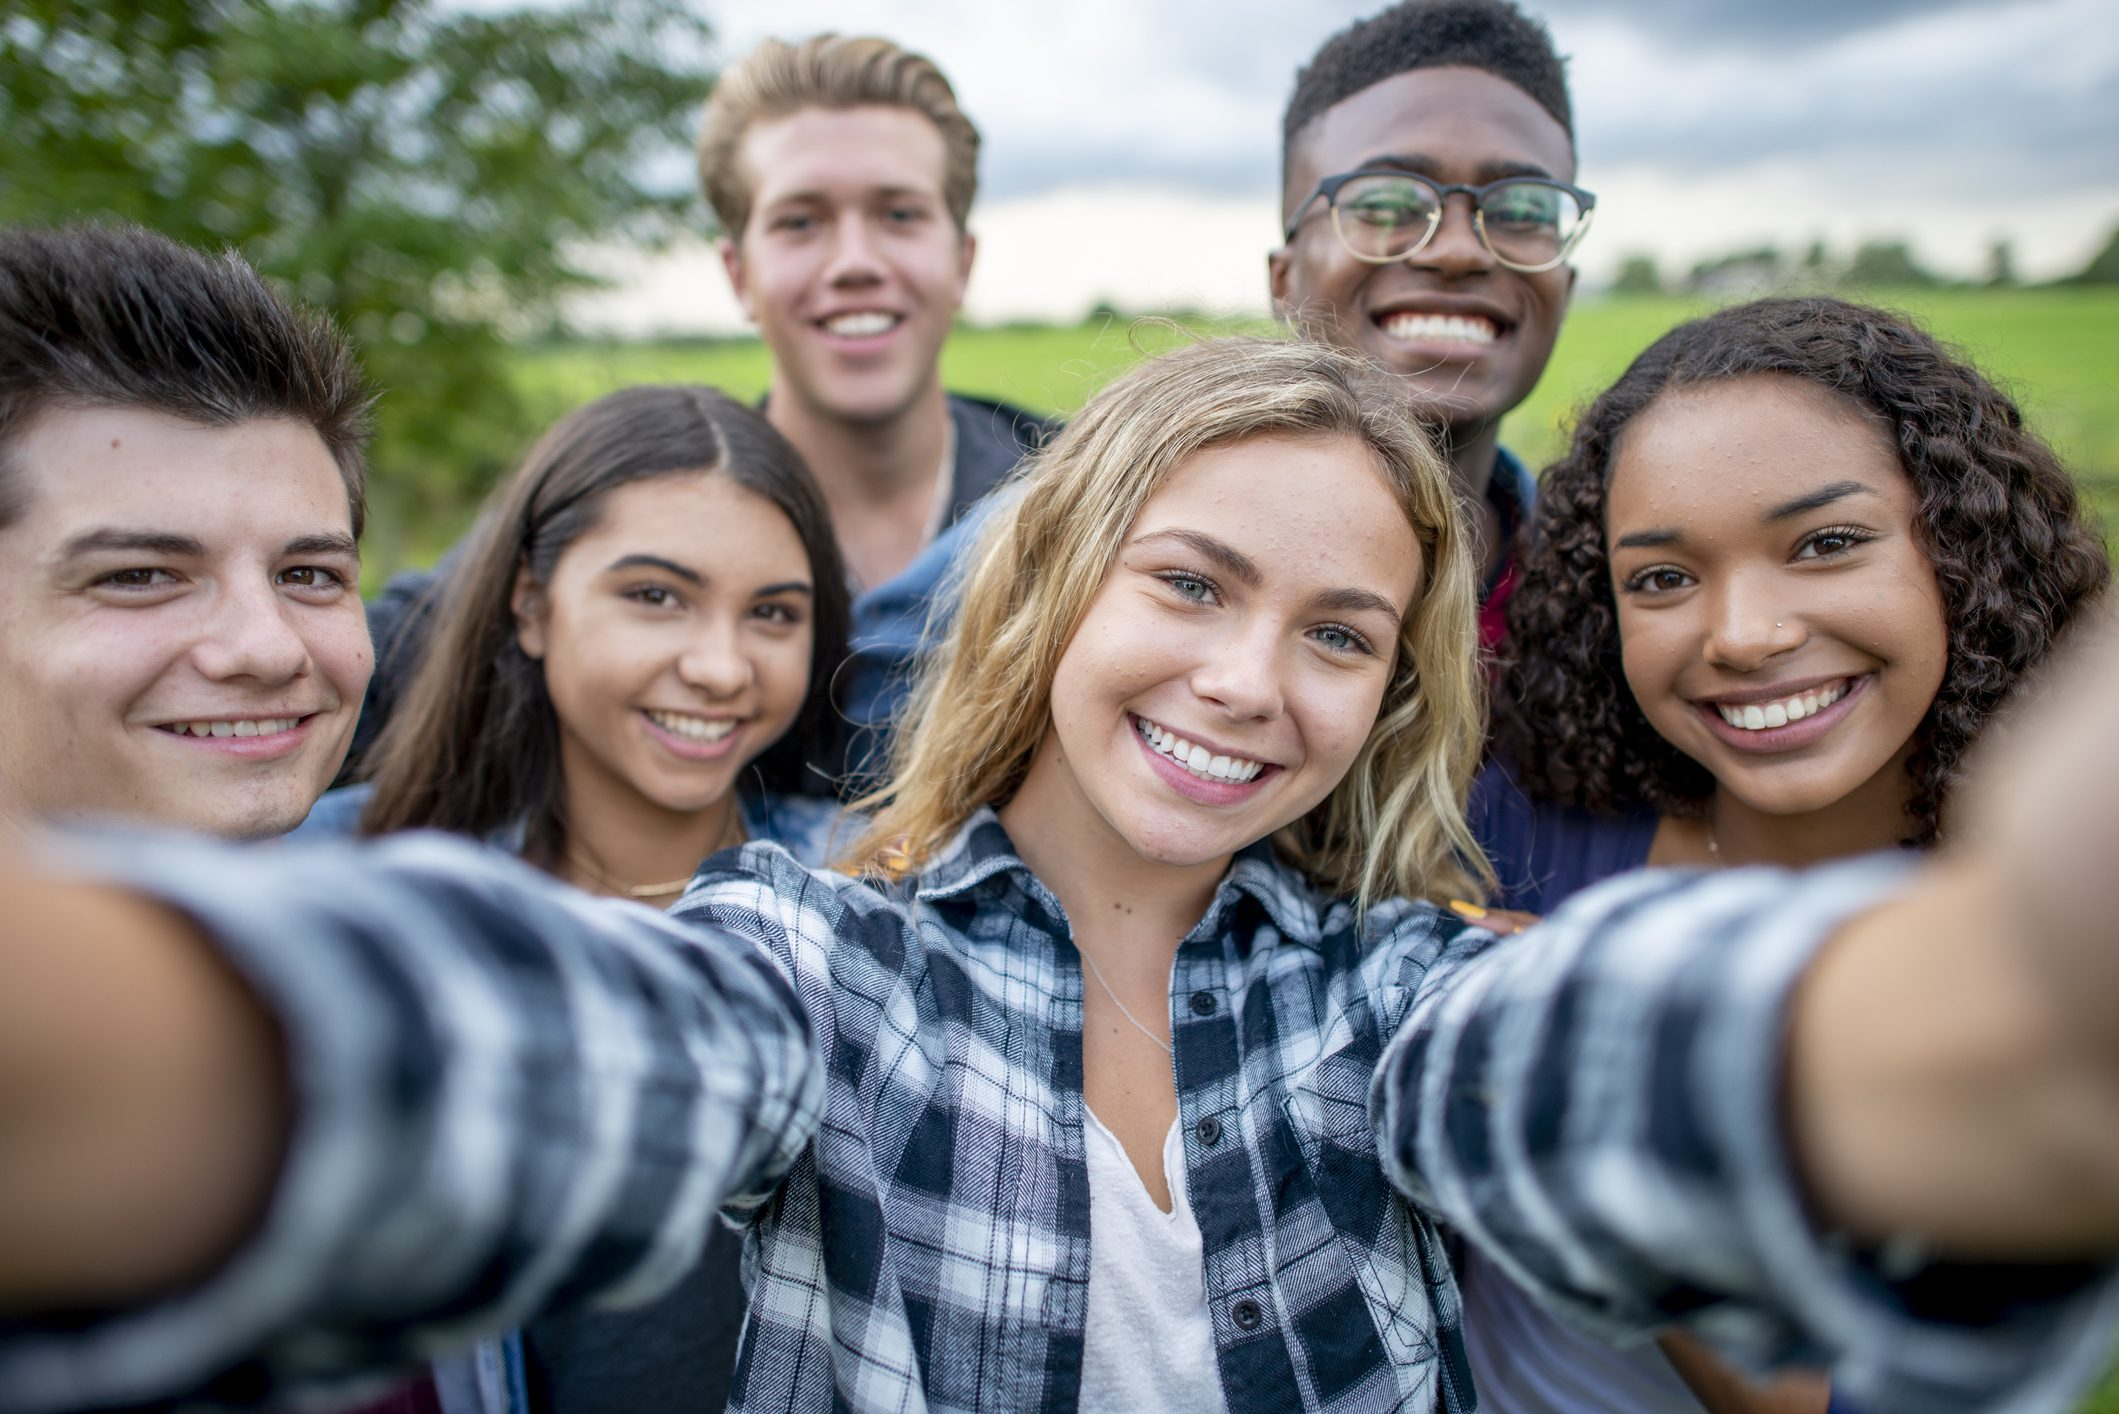 A group of multi-ethnic students taking a selfie outside.  They are dressed casually and having fun together in a group.